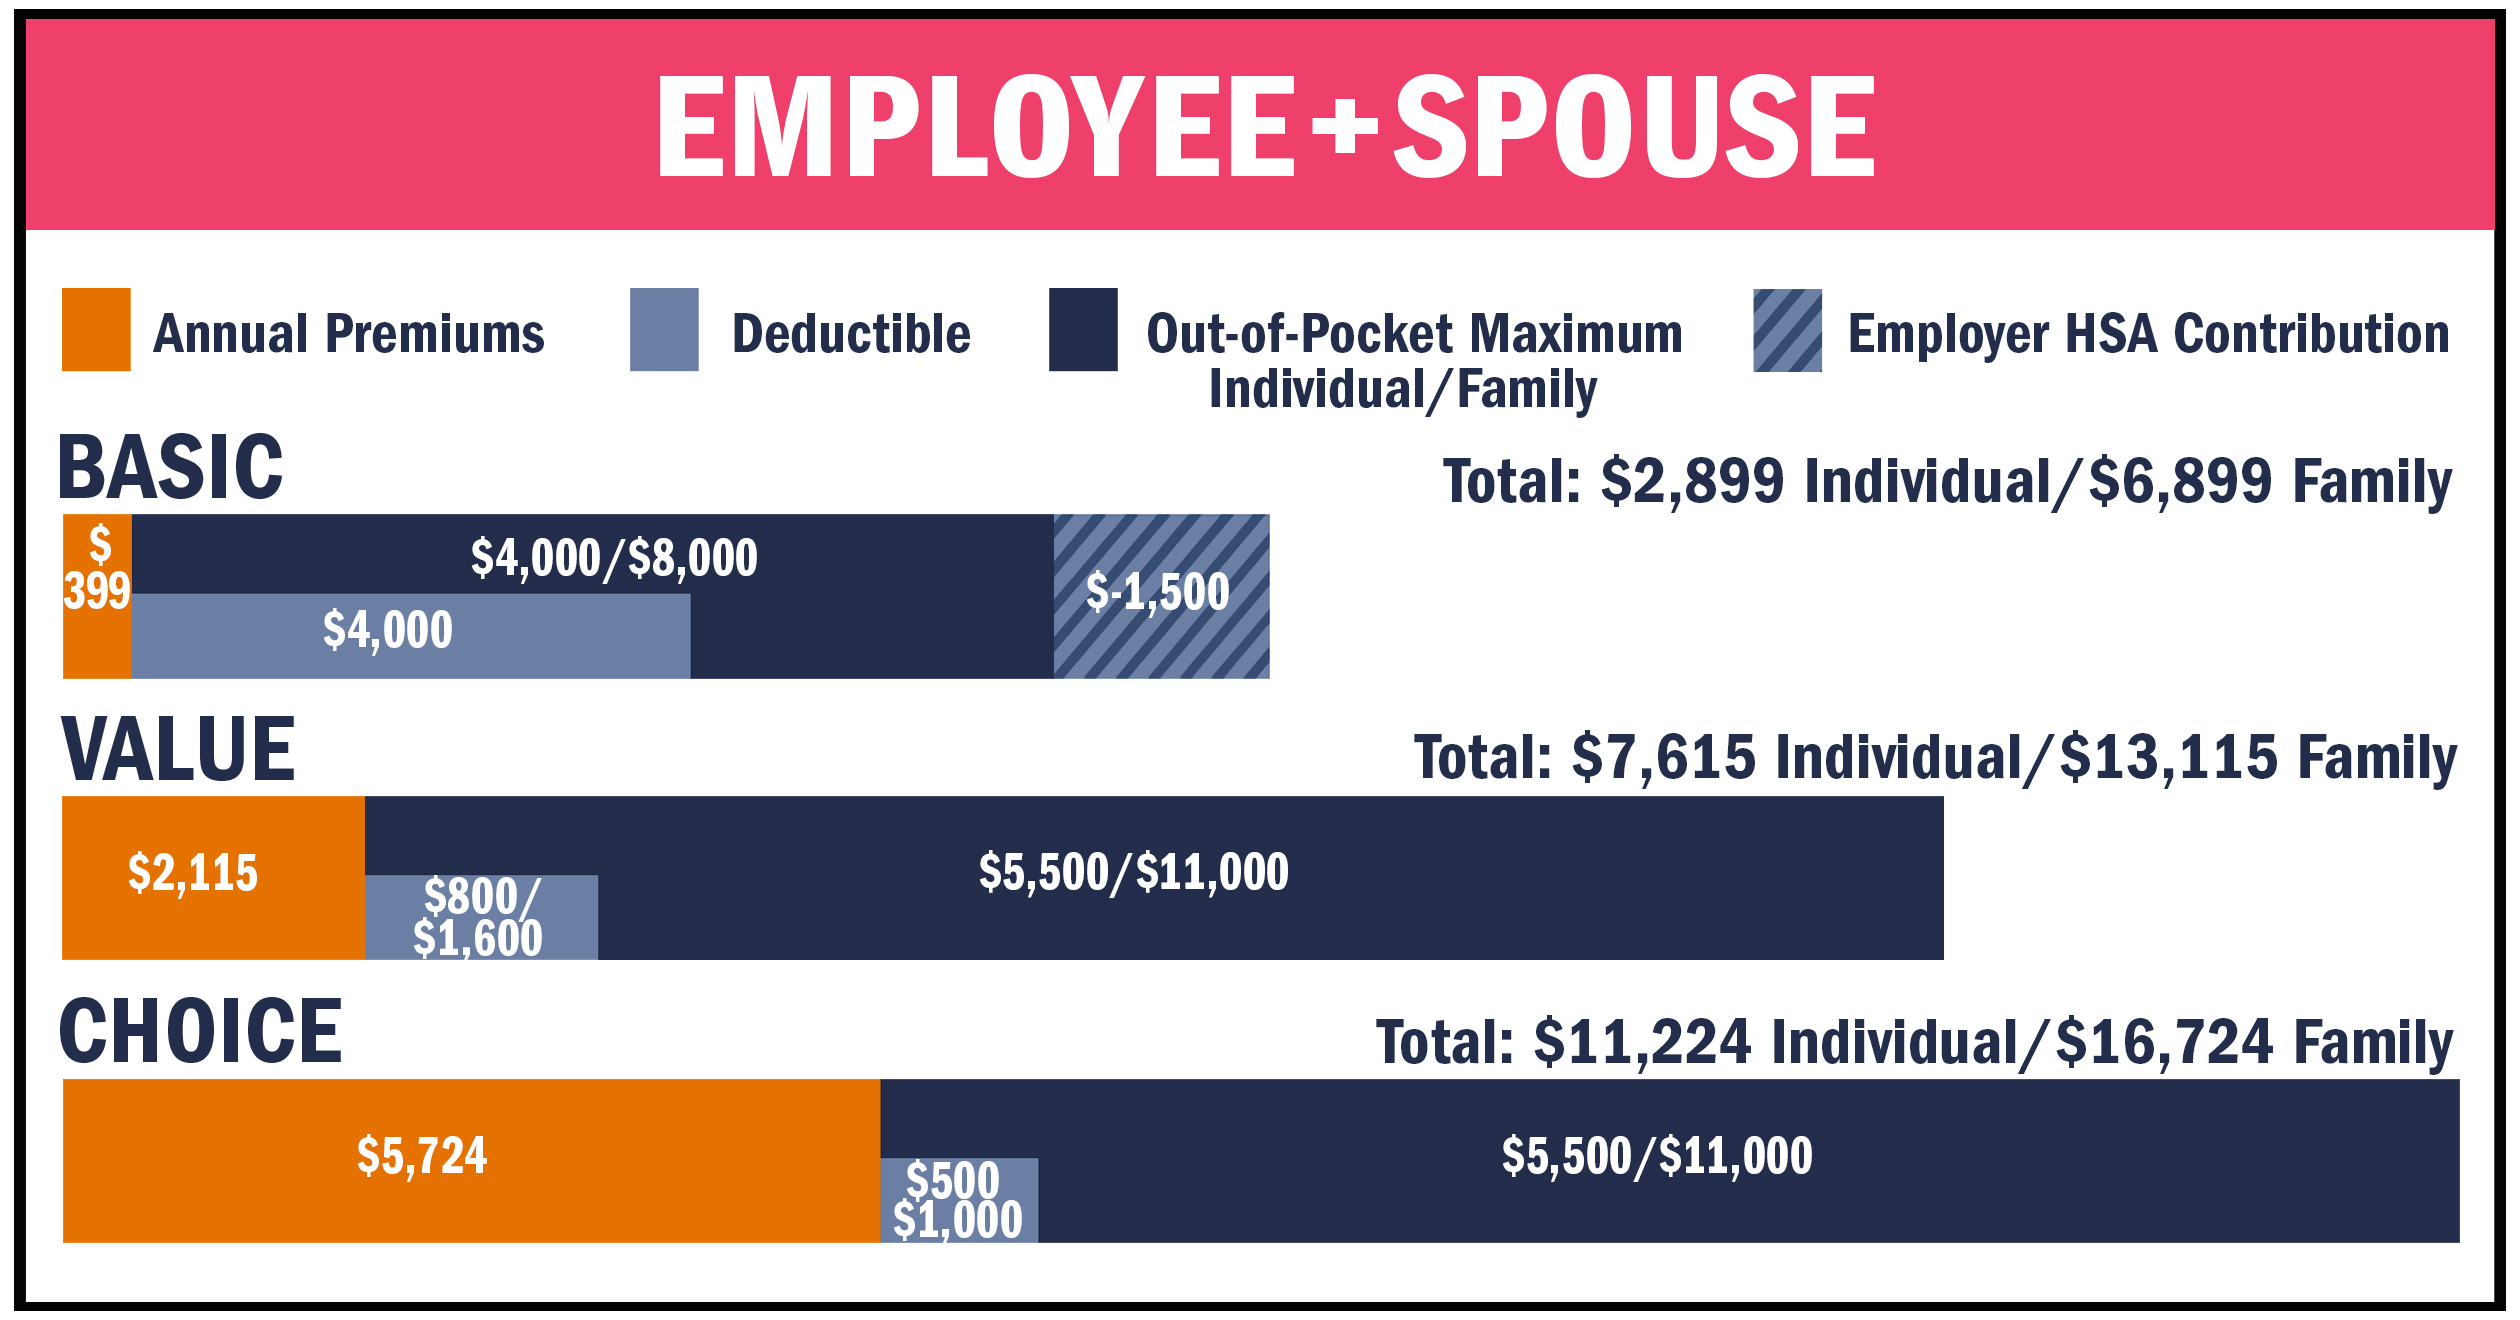 Employee + Spouse chart